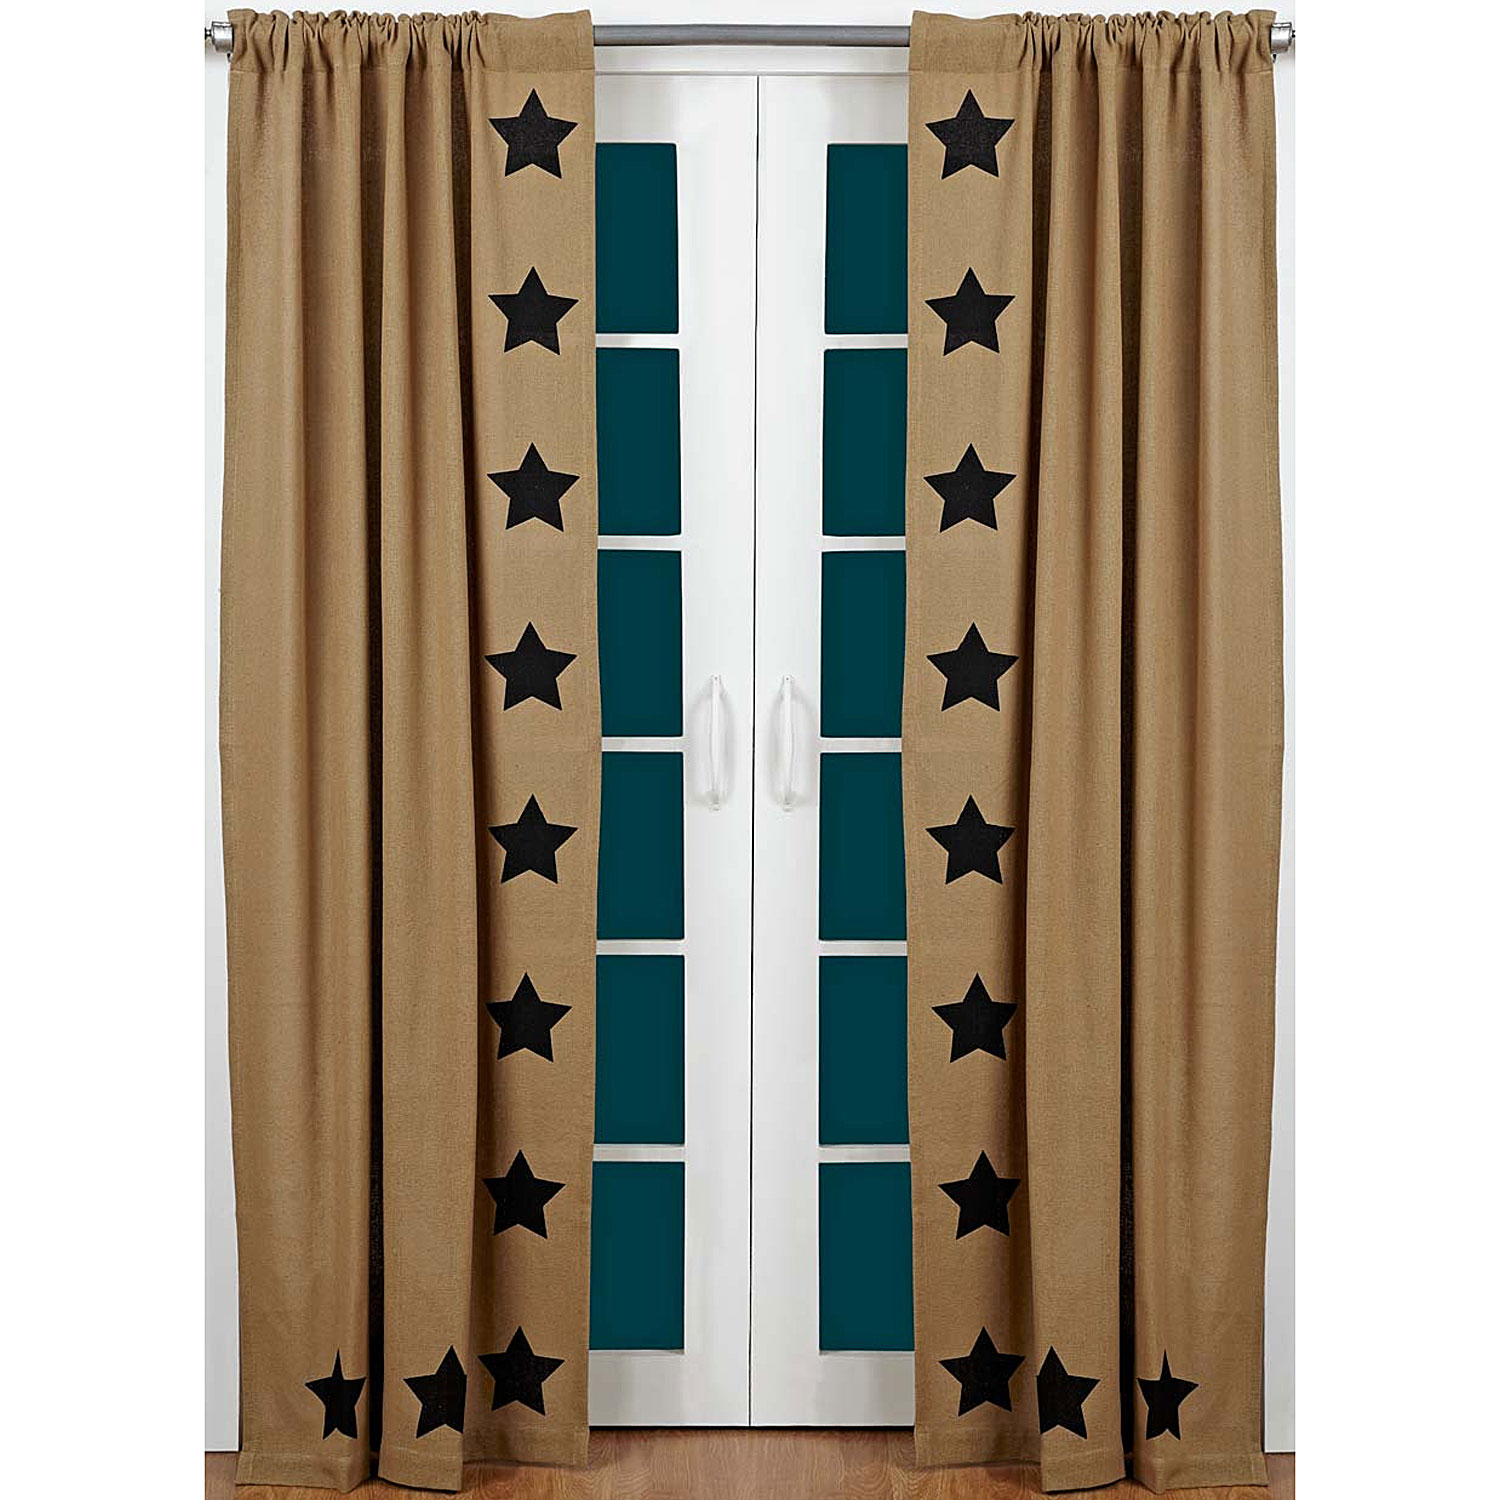 vhc-bss-02709-burlap-black-stencil-star-curtain-panels-lrg